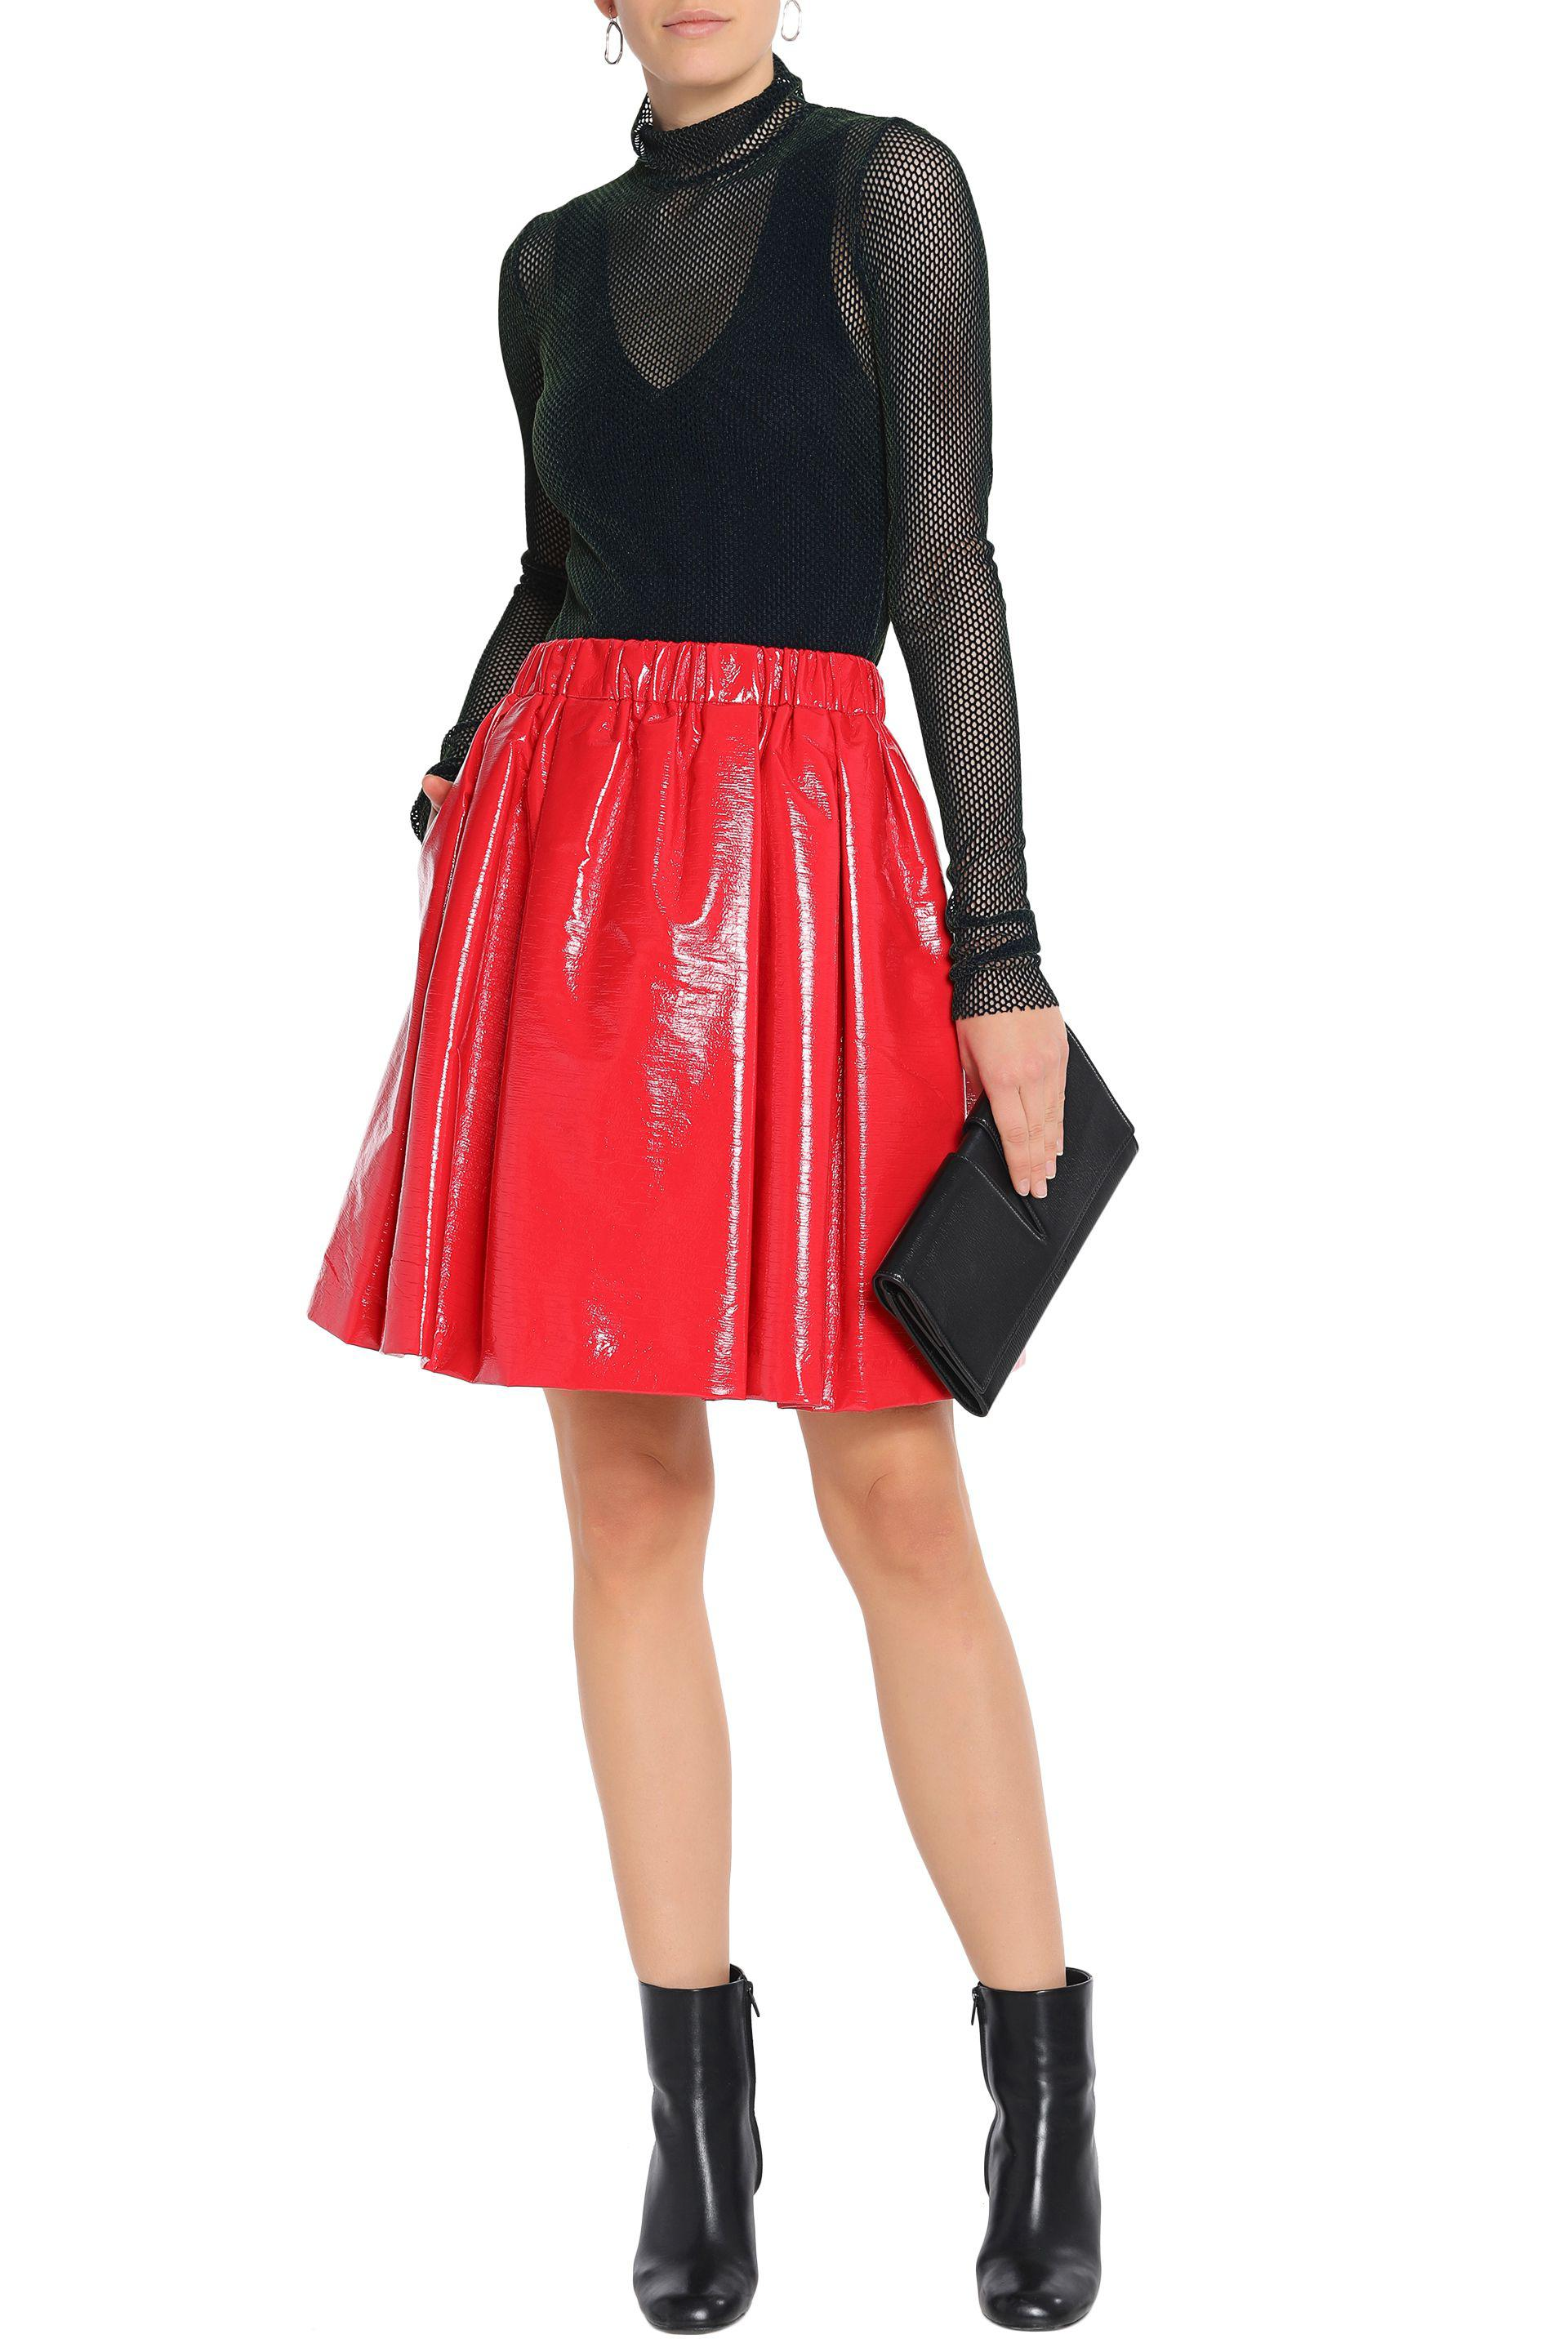 bec785d152 MSGM Pleated Faux Patent-leather Skirt in Red - Lyst